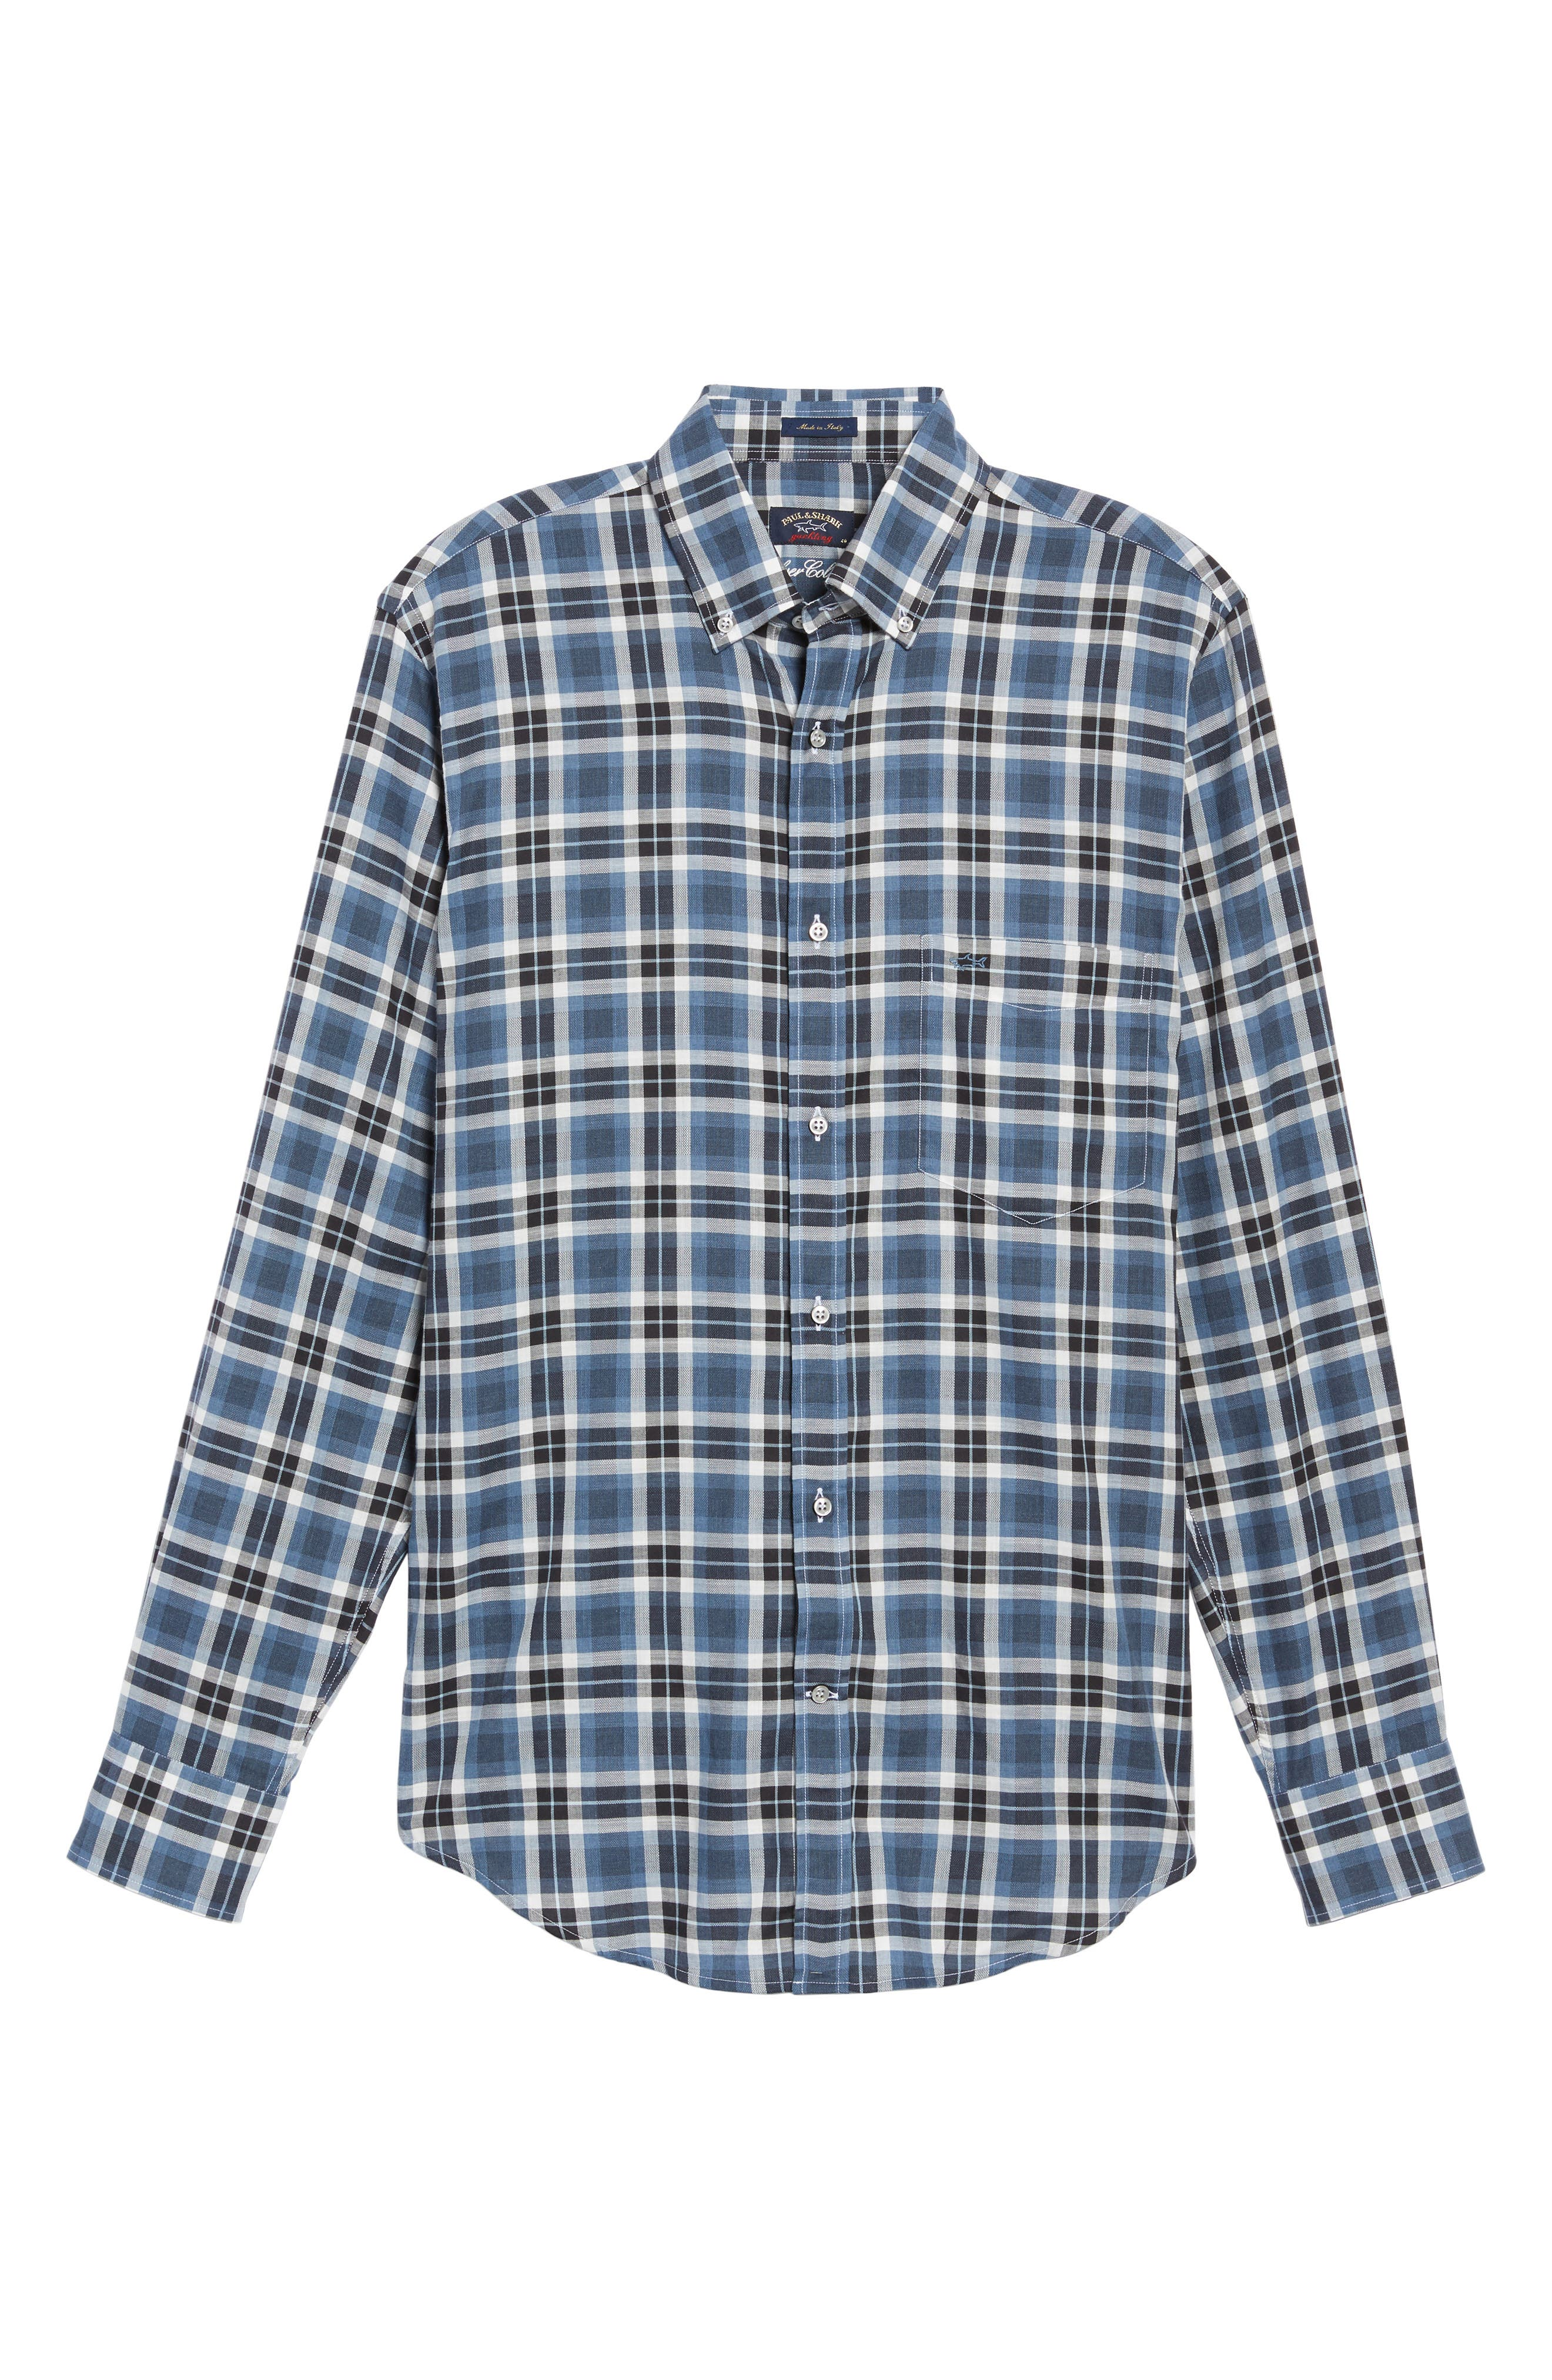 Paul&Shark Silver Collection Plaid Sport Shirt,                             Alternate thumbnail 6, color,                             400